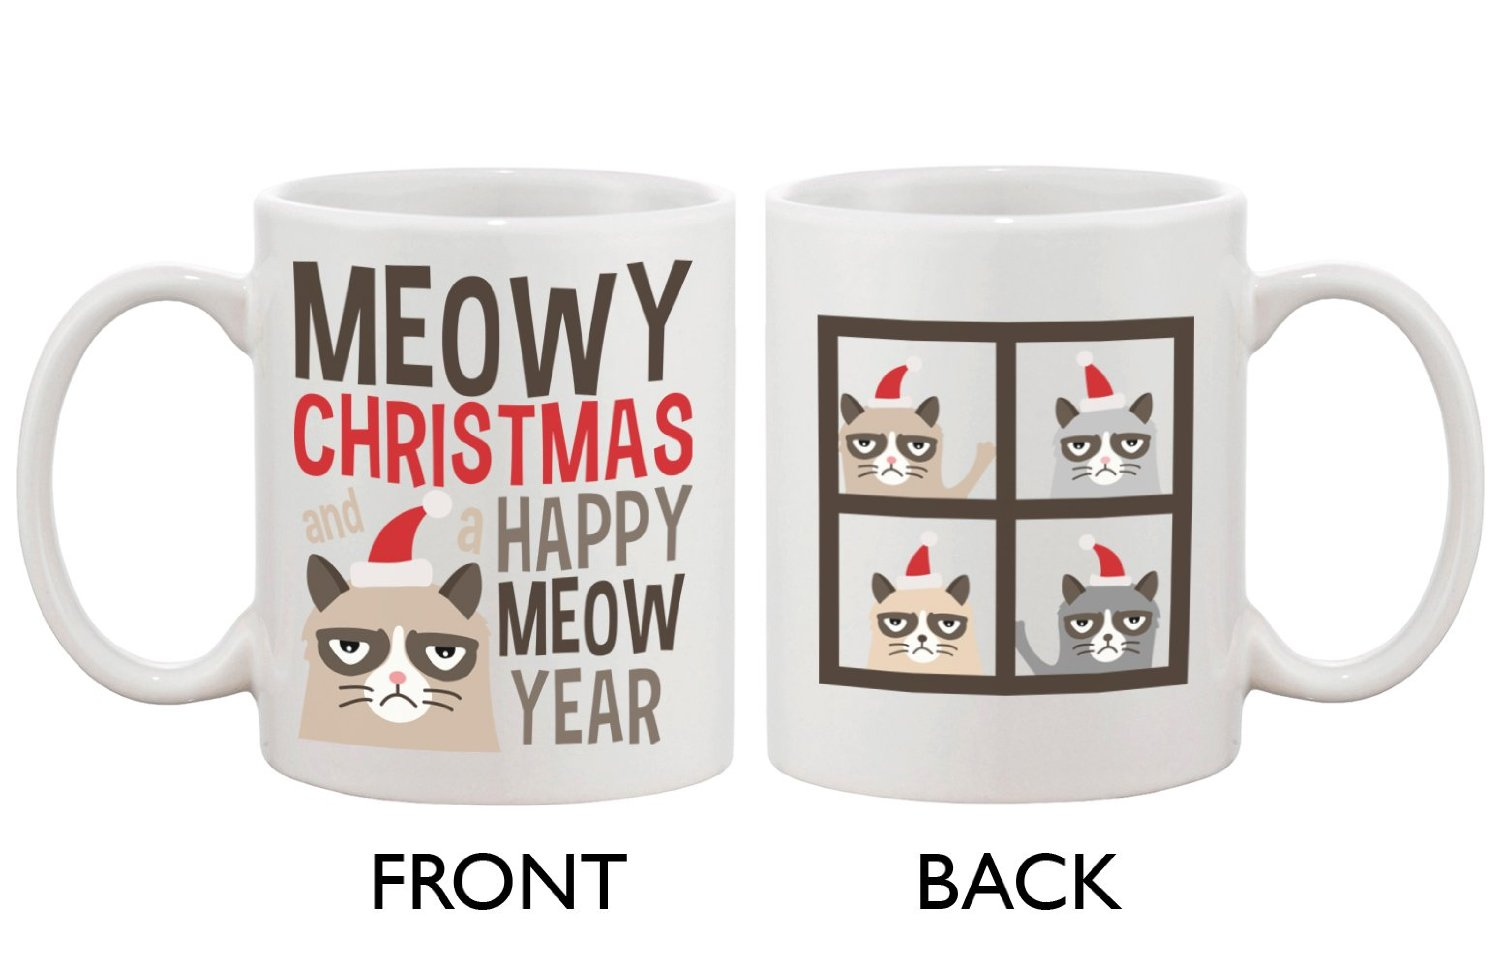 Meowy christmas and a happy meow year: kitchen & dining